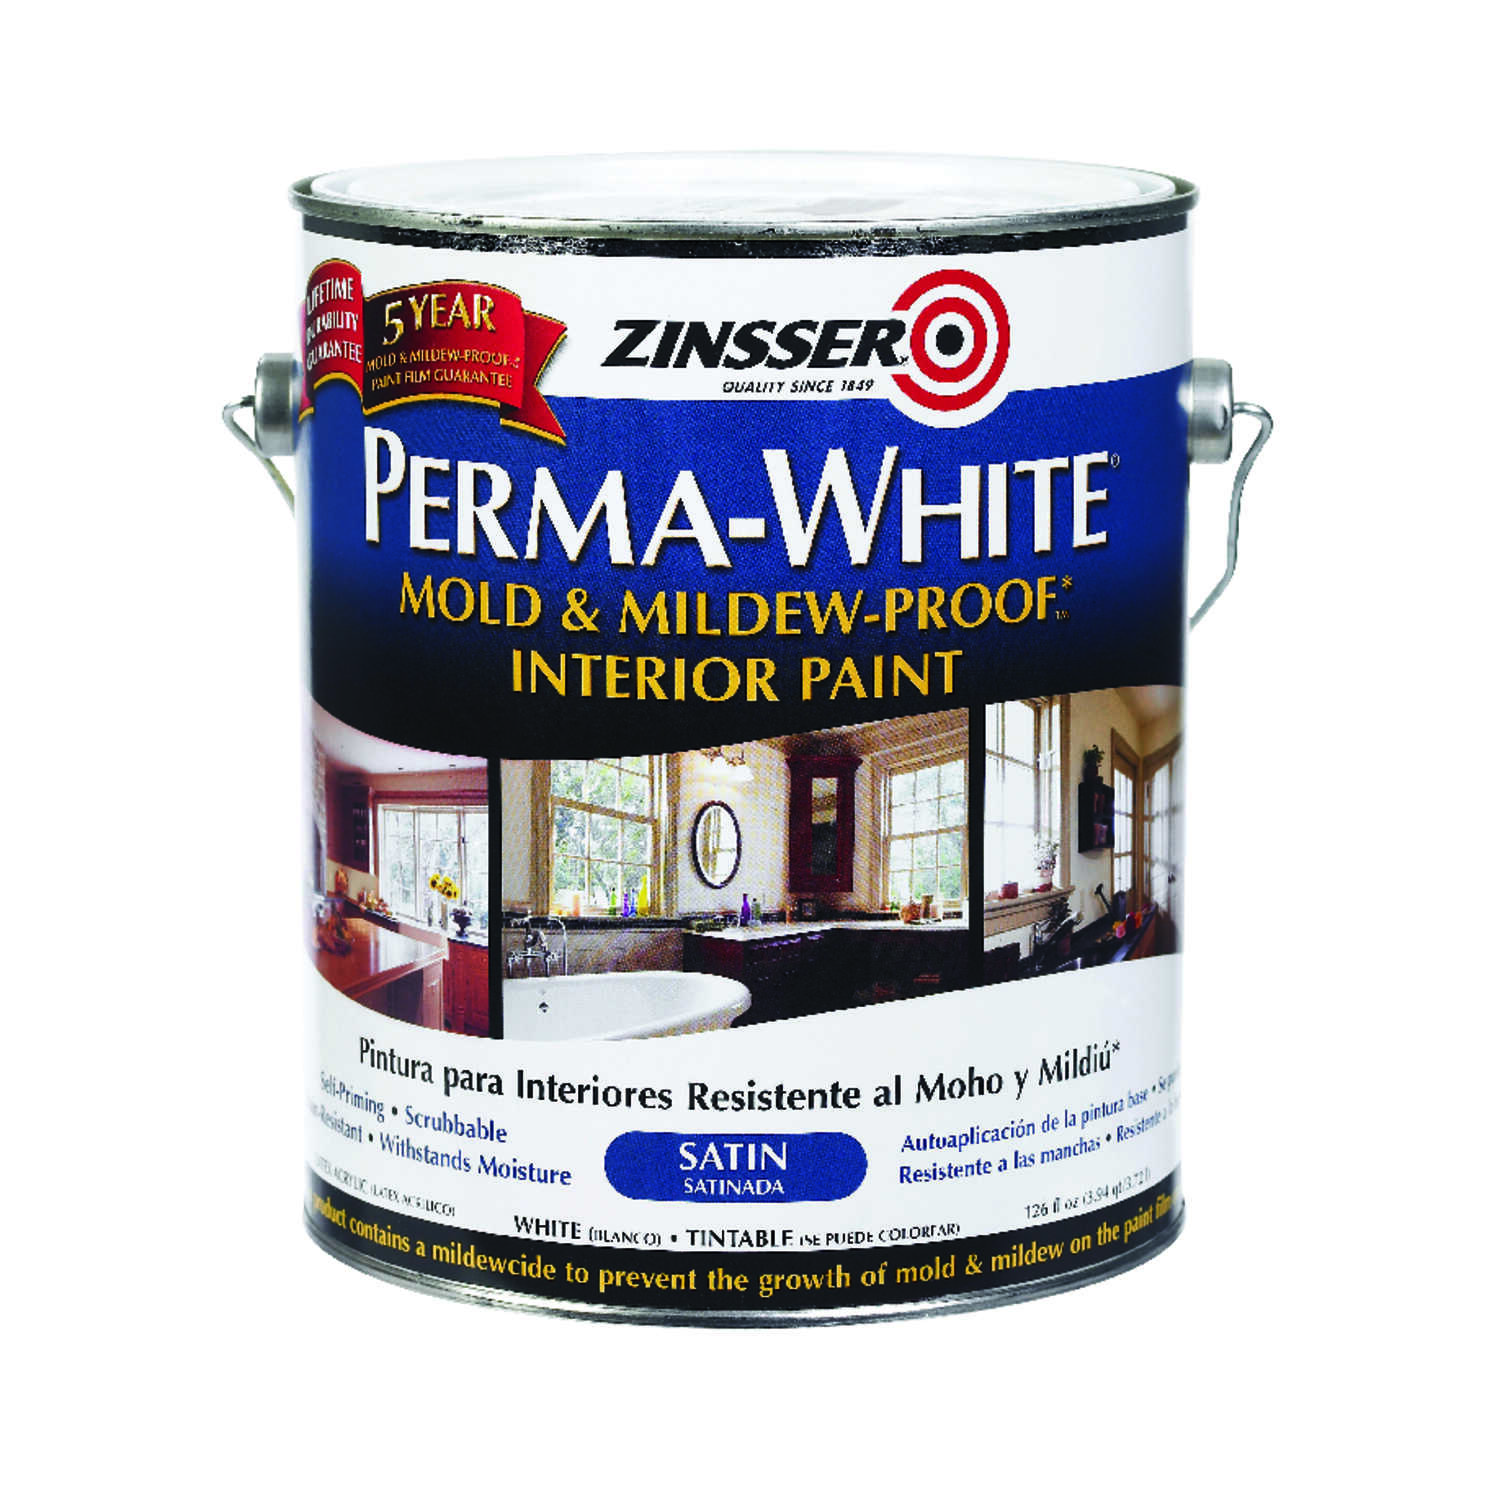 Zinsser  Perma-White  Satin  Mold and Mildew-Proof Paint  1 gal. White